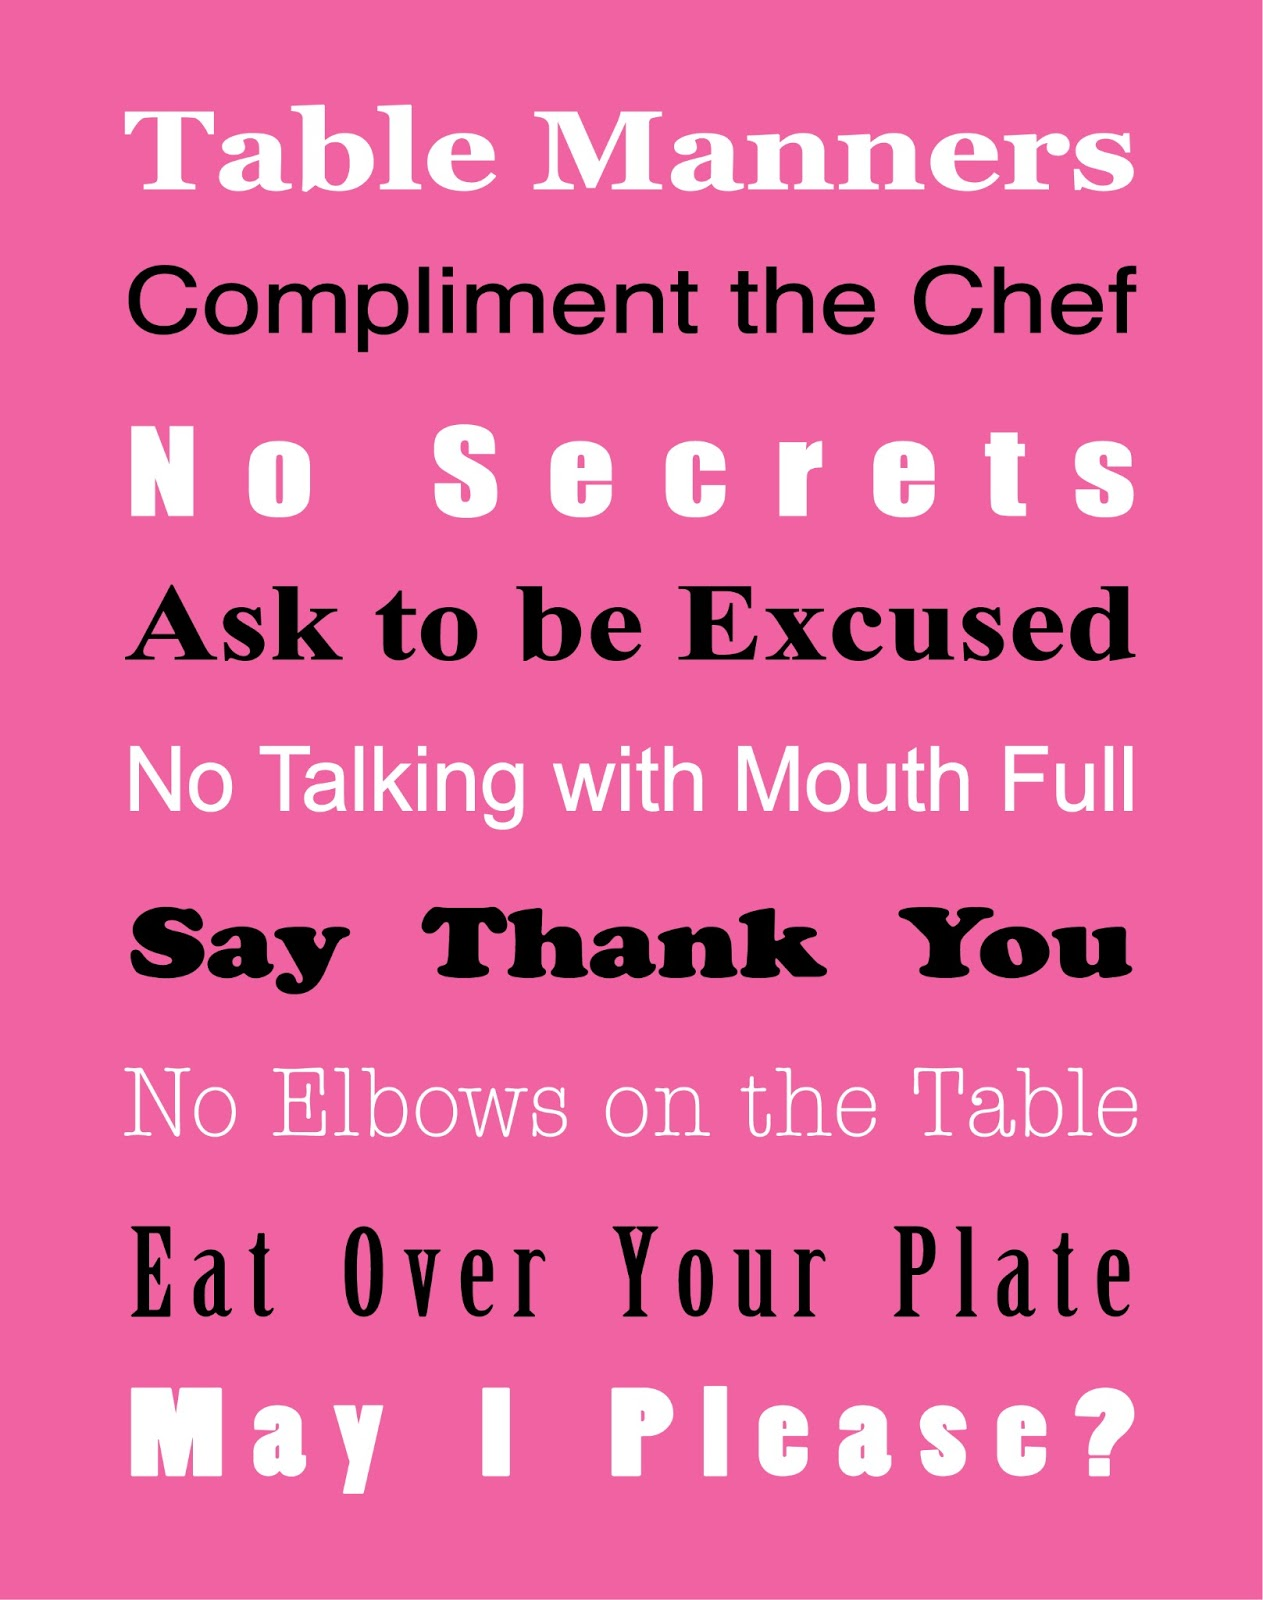 TABLE MANNERS Quotes Like Success : table manners pink from likesuccess.com size 1263 x 1600 jpeg 173kB